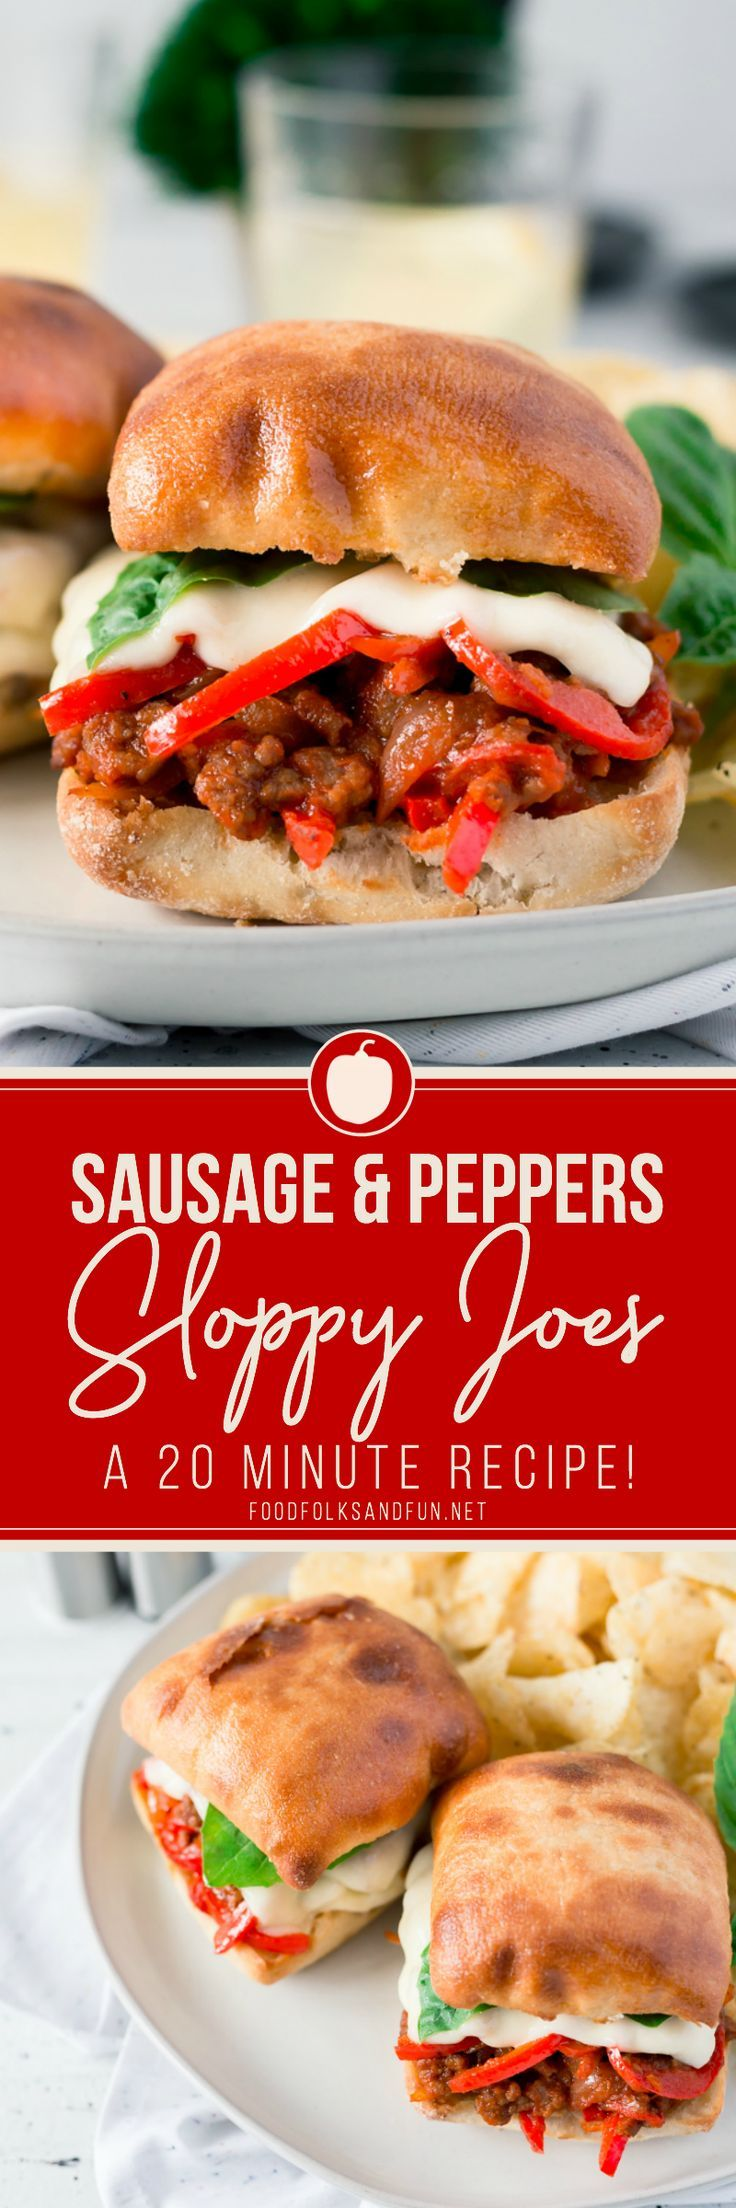 These Sausage and Peppers Sloppy Joes are some serious comfort food! They're super easy to make, all you'll need is just 25 minutes! | #easyrecipe #30minuterecipe #dinner #dinnerrecipe